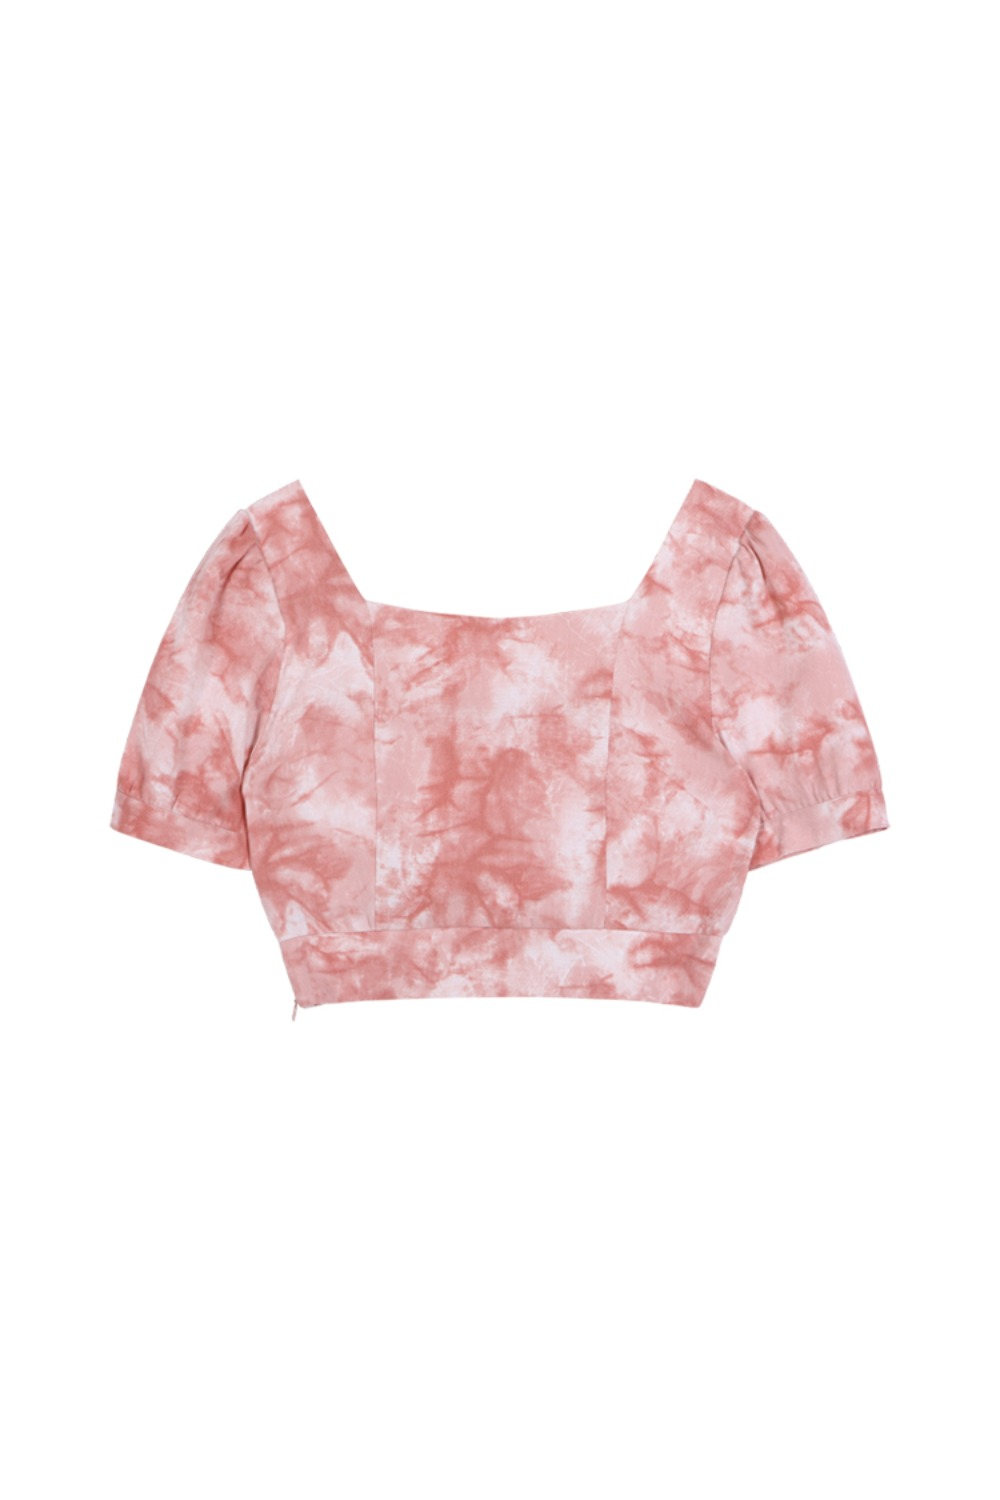 HIDE Tie Dye Crop Blouse PINK